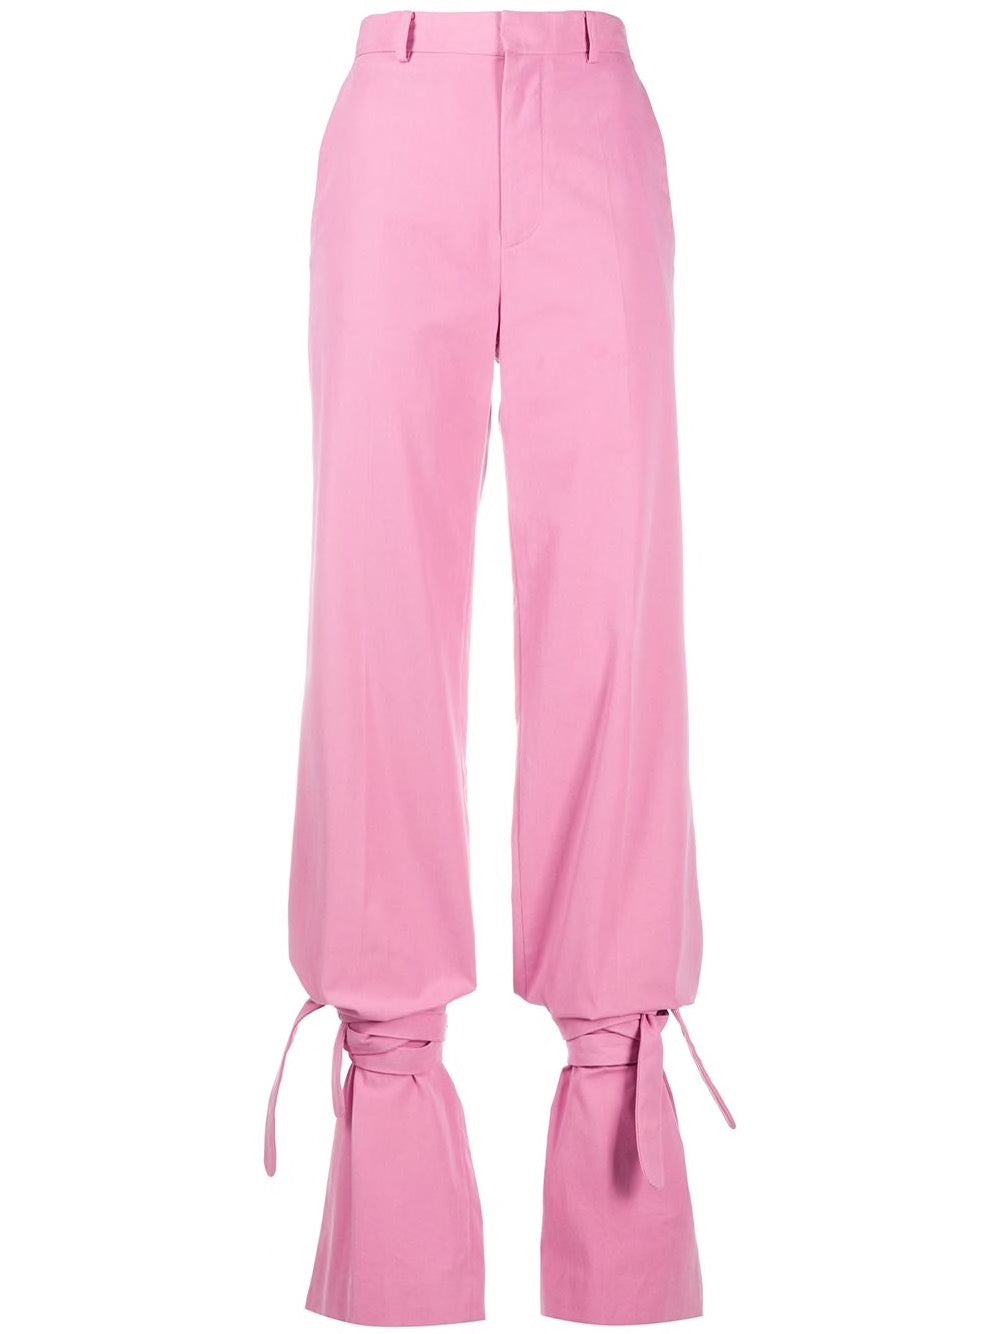 Orchid Pink Pant